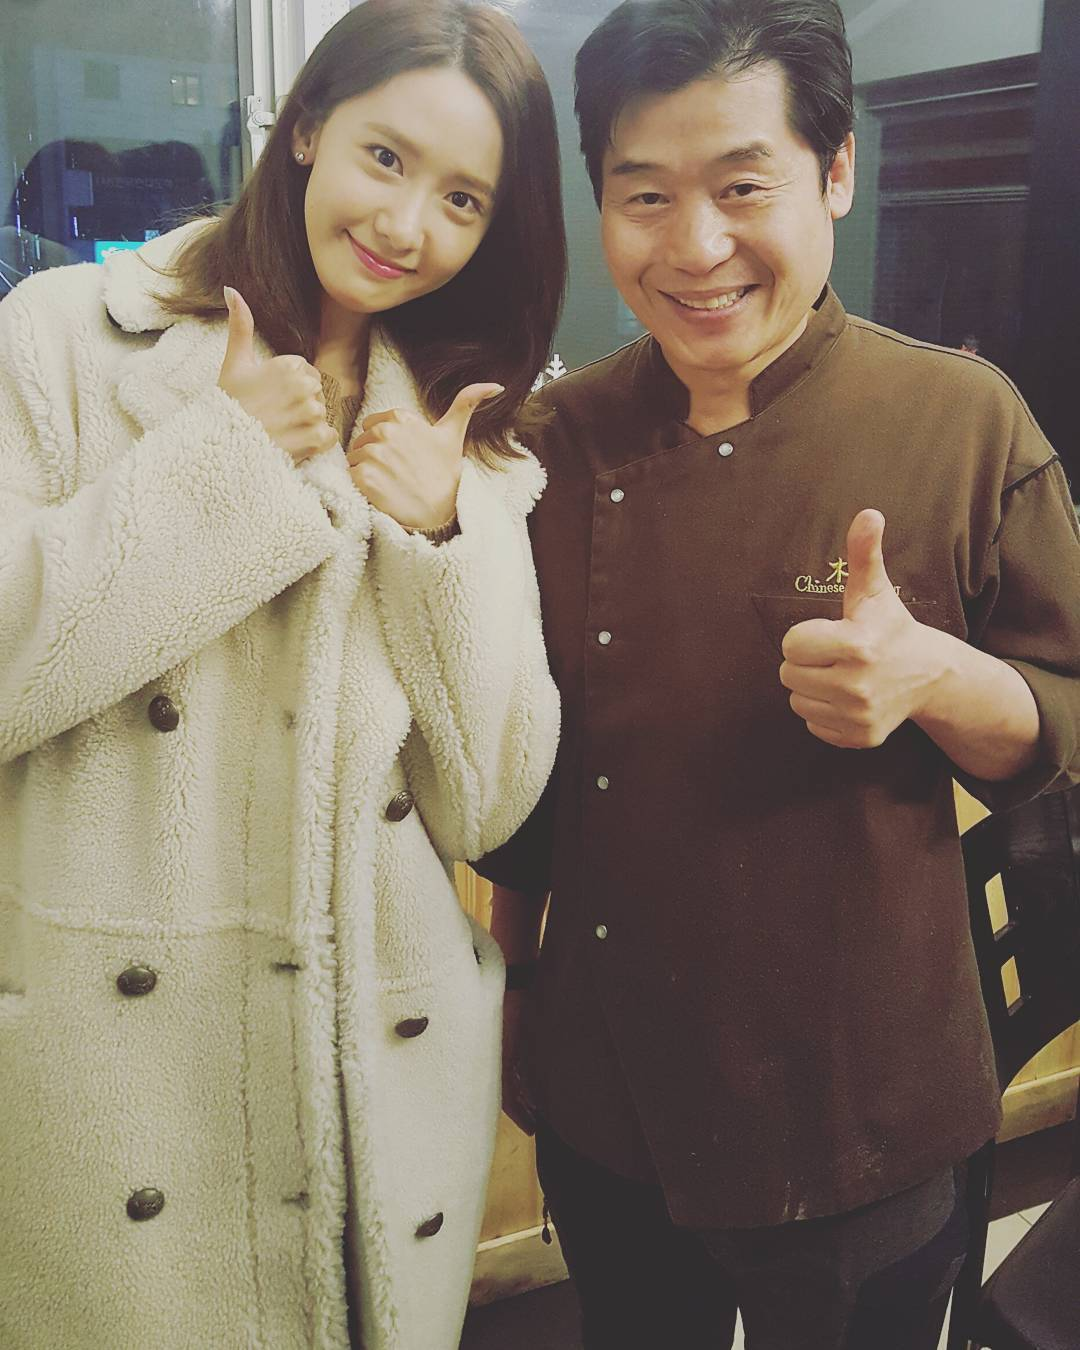 SNSD Yoona with Chef Lee Yeon Bok https://t.co/jHZX8zjfy3